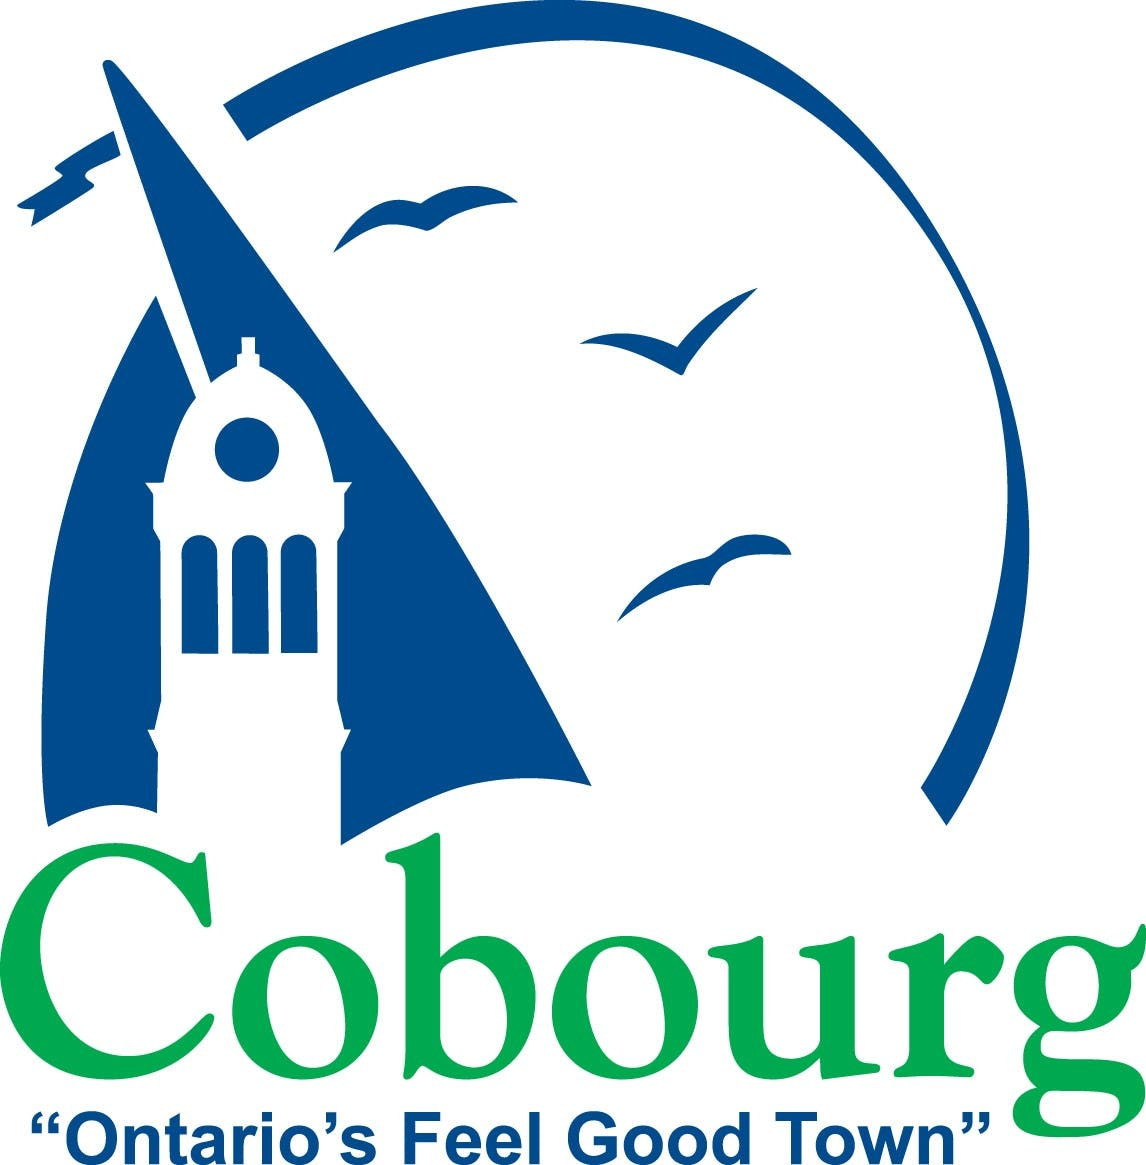 Engage Cobourg